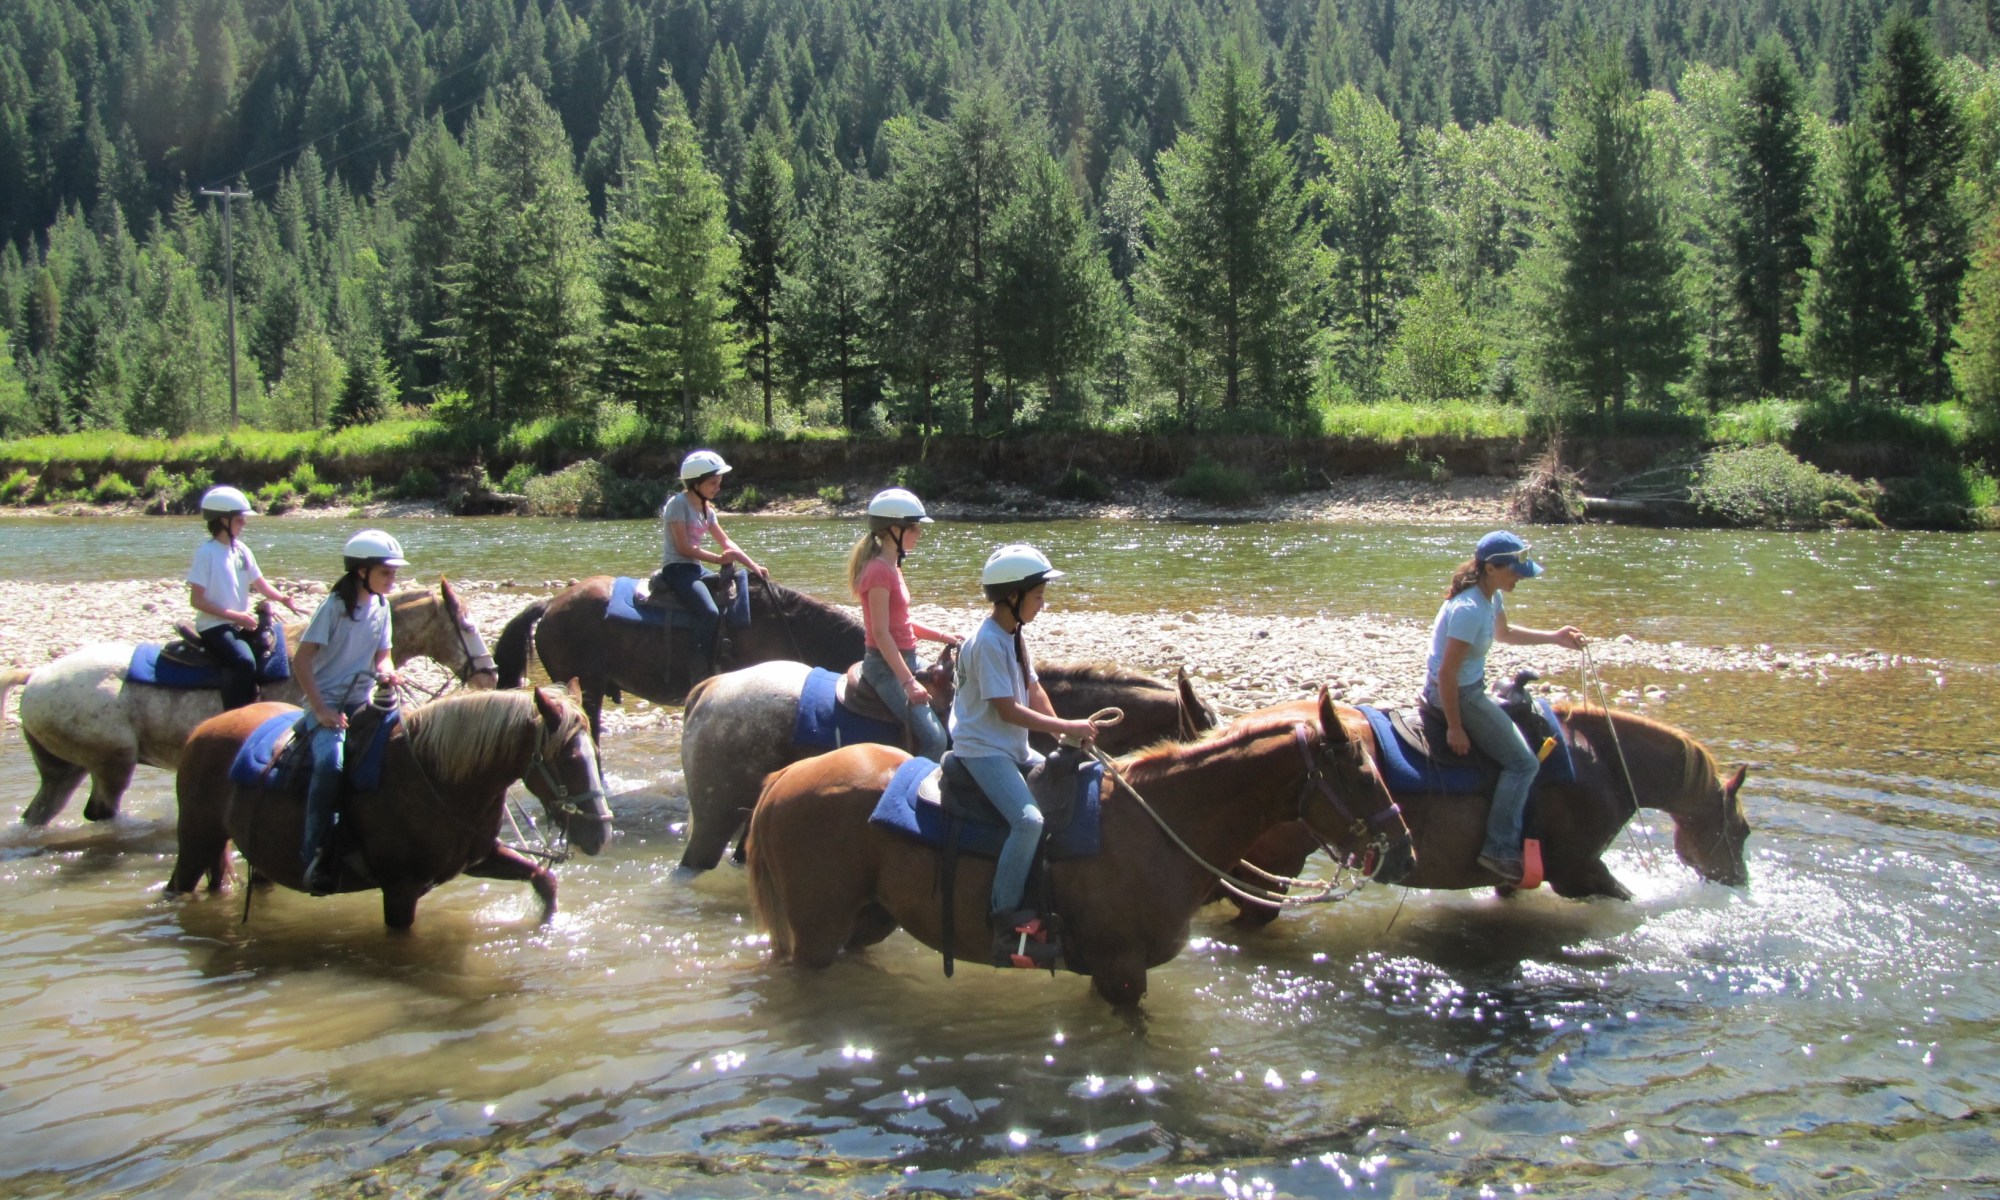 castle rock ranch horse riding